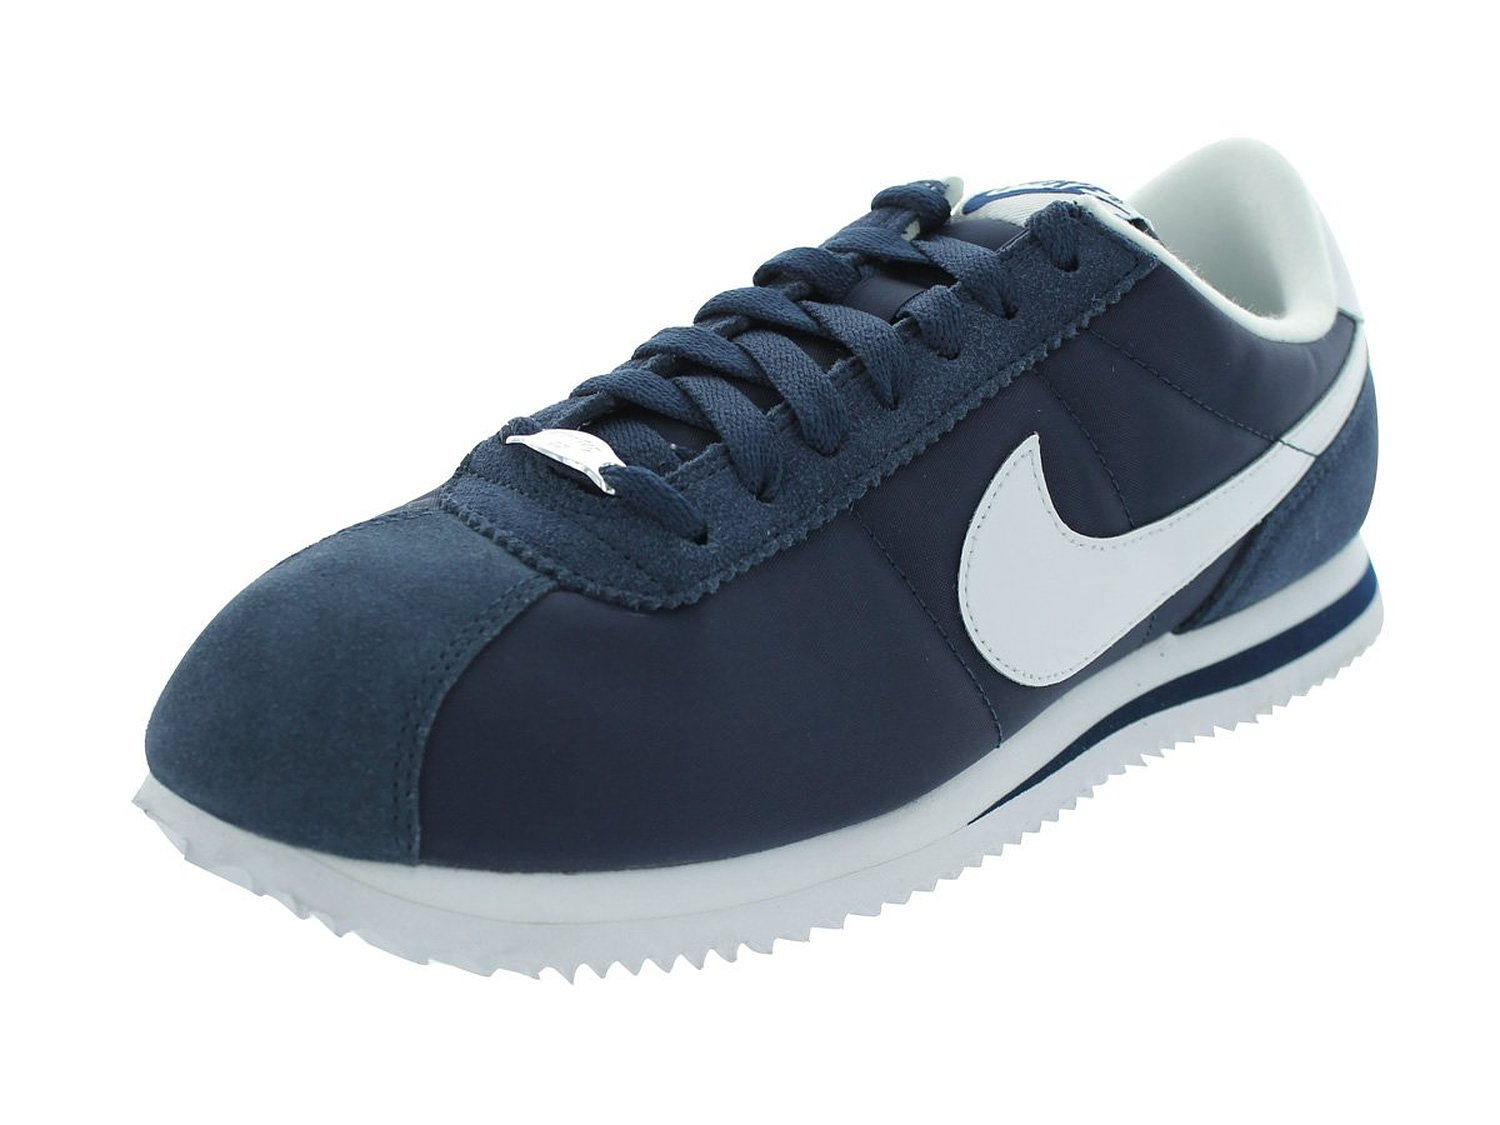 Amazon.com: nike men's cortez training shoe: shoes